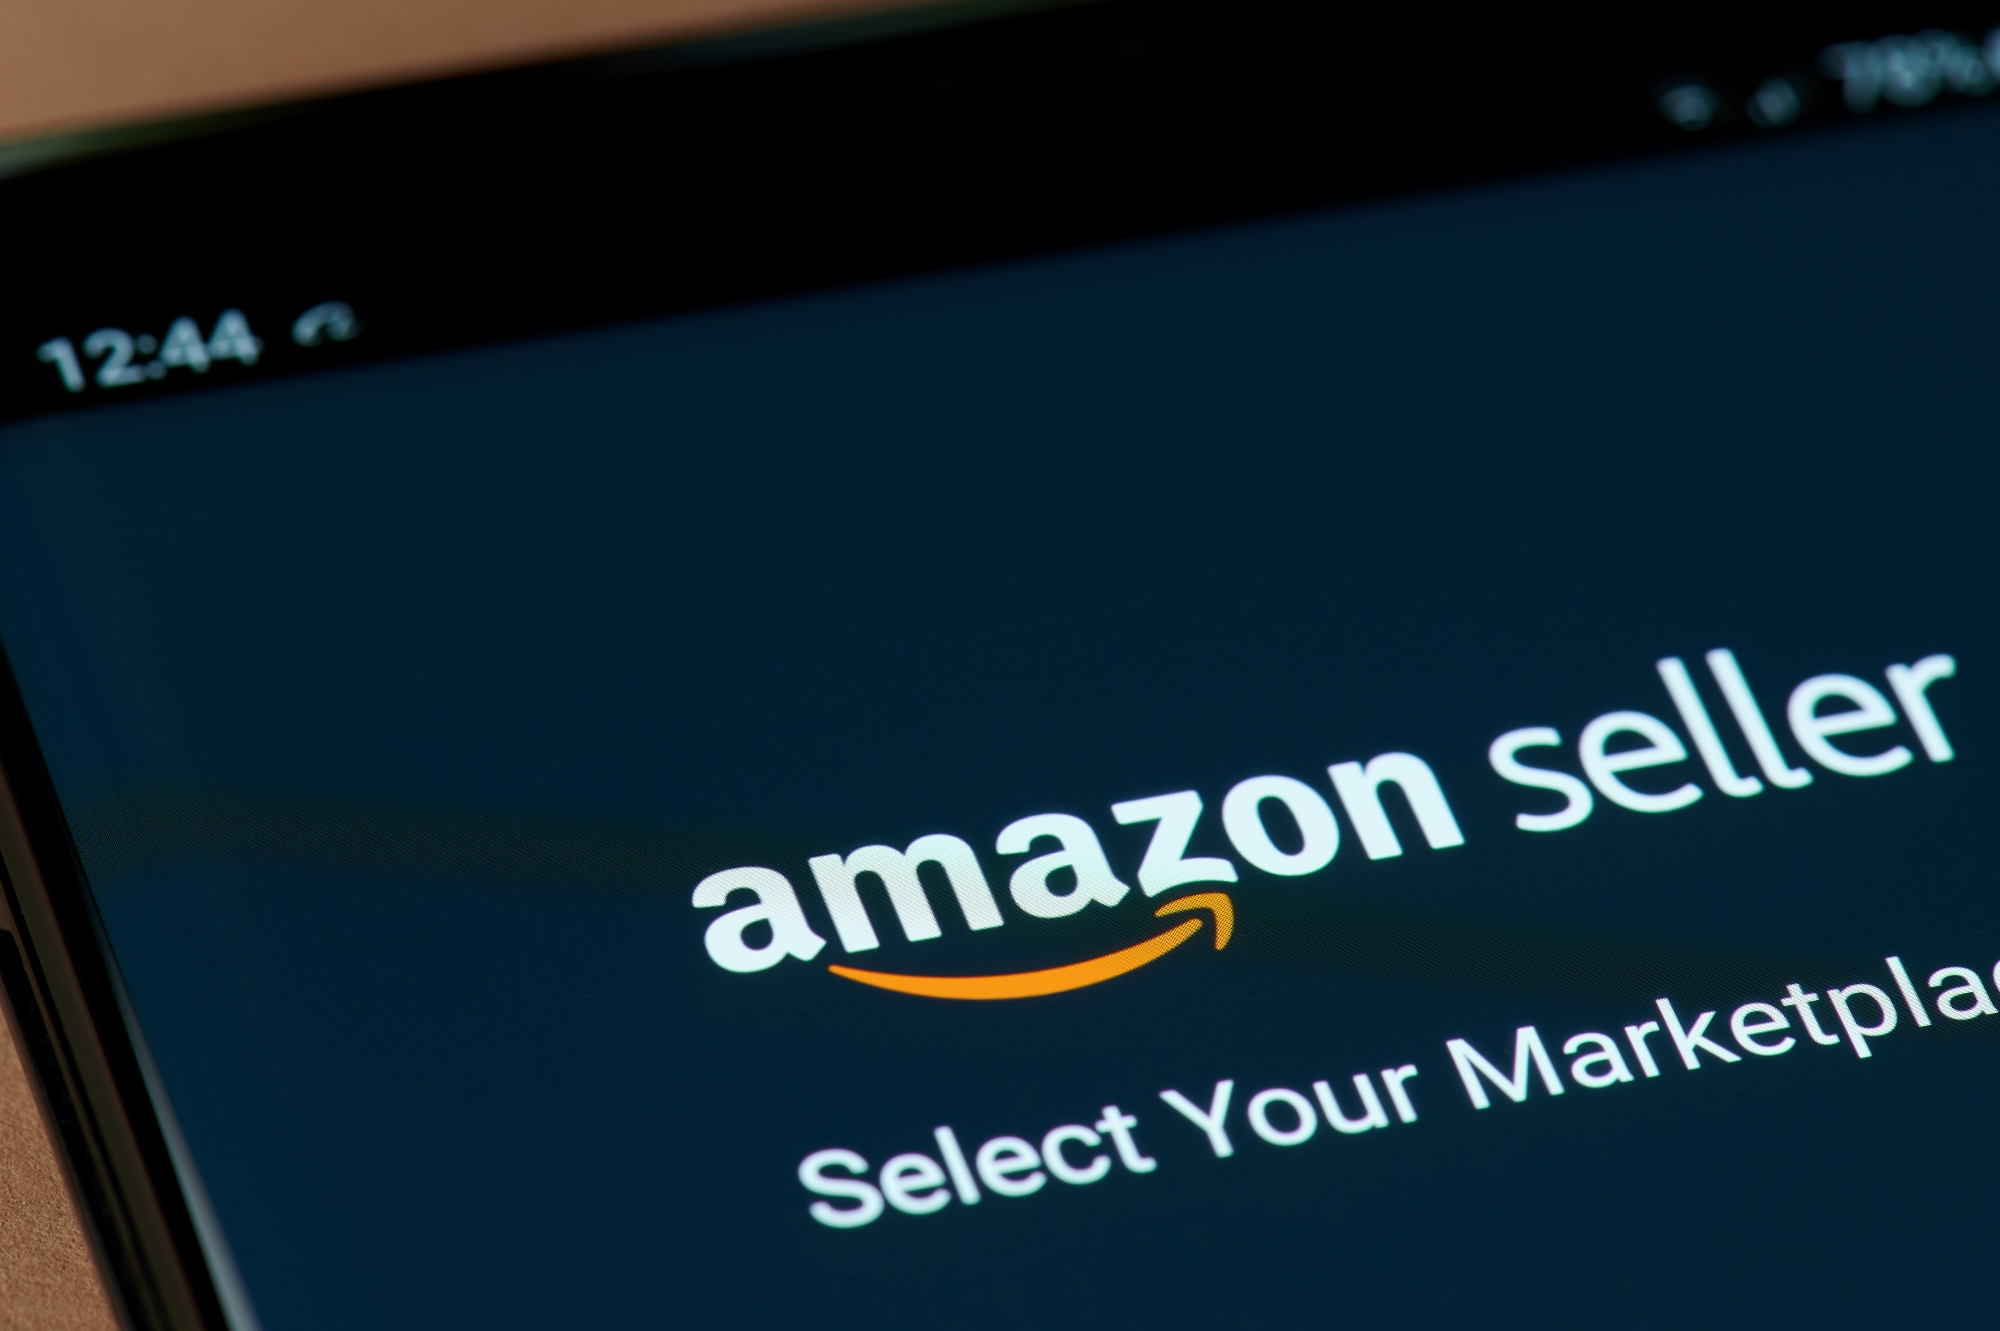 A screenshot of the Amazon Seller page that FBA business owners start their business on